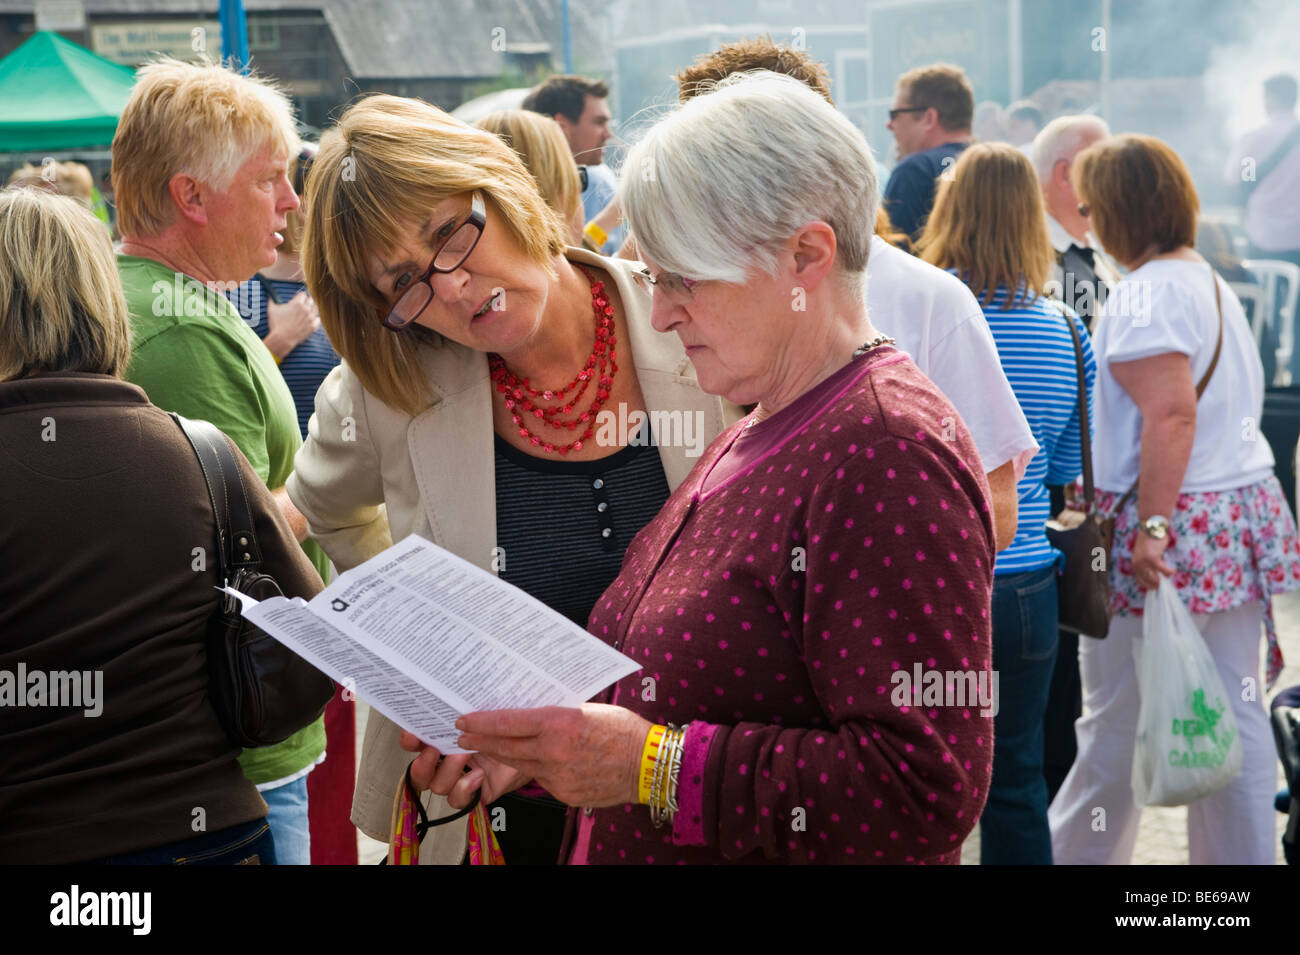 People reading leaflets at Abergavenny Food Festival Monmouthshire South Wales UK - Stock Image